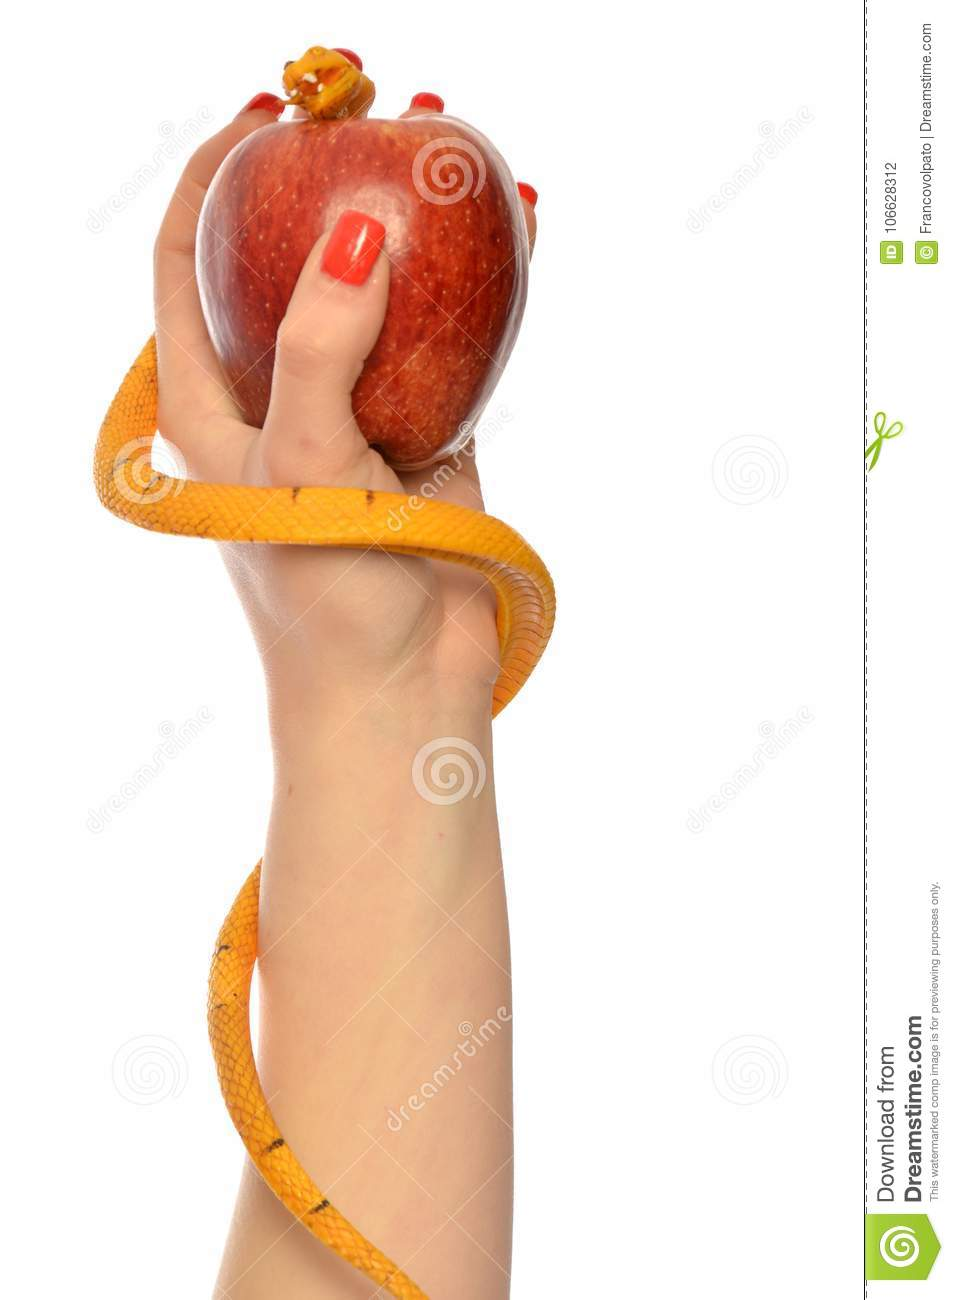 Allegory Of The Temptation Of Adam And Eve Stock Photo Image Of